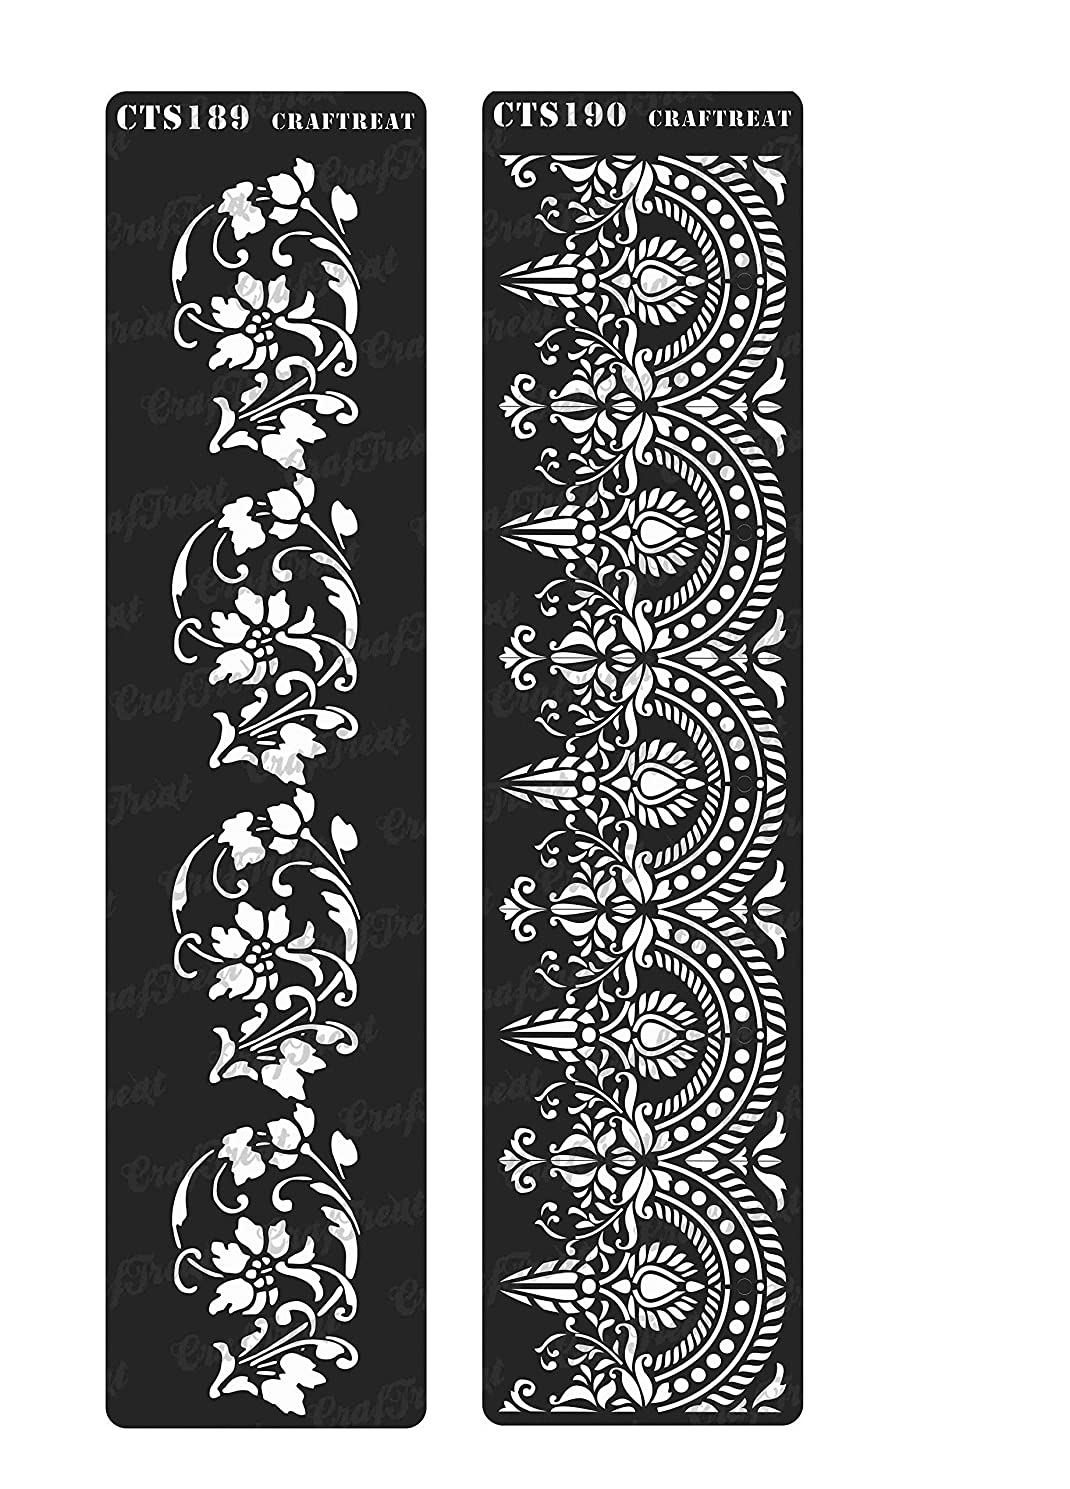 CrafTreat Stencil - Border 3 & 4 (2 pcs) | Reusable Painting Template for Home Decor, Crafting, DIY Albums and Printing on Paper, Floor, Wall, Tile, Fabric, Wood 3